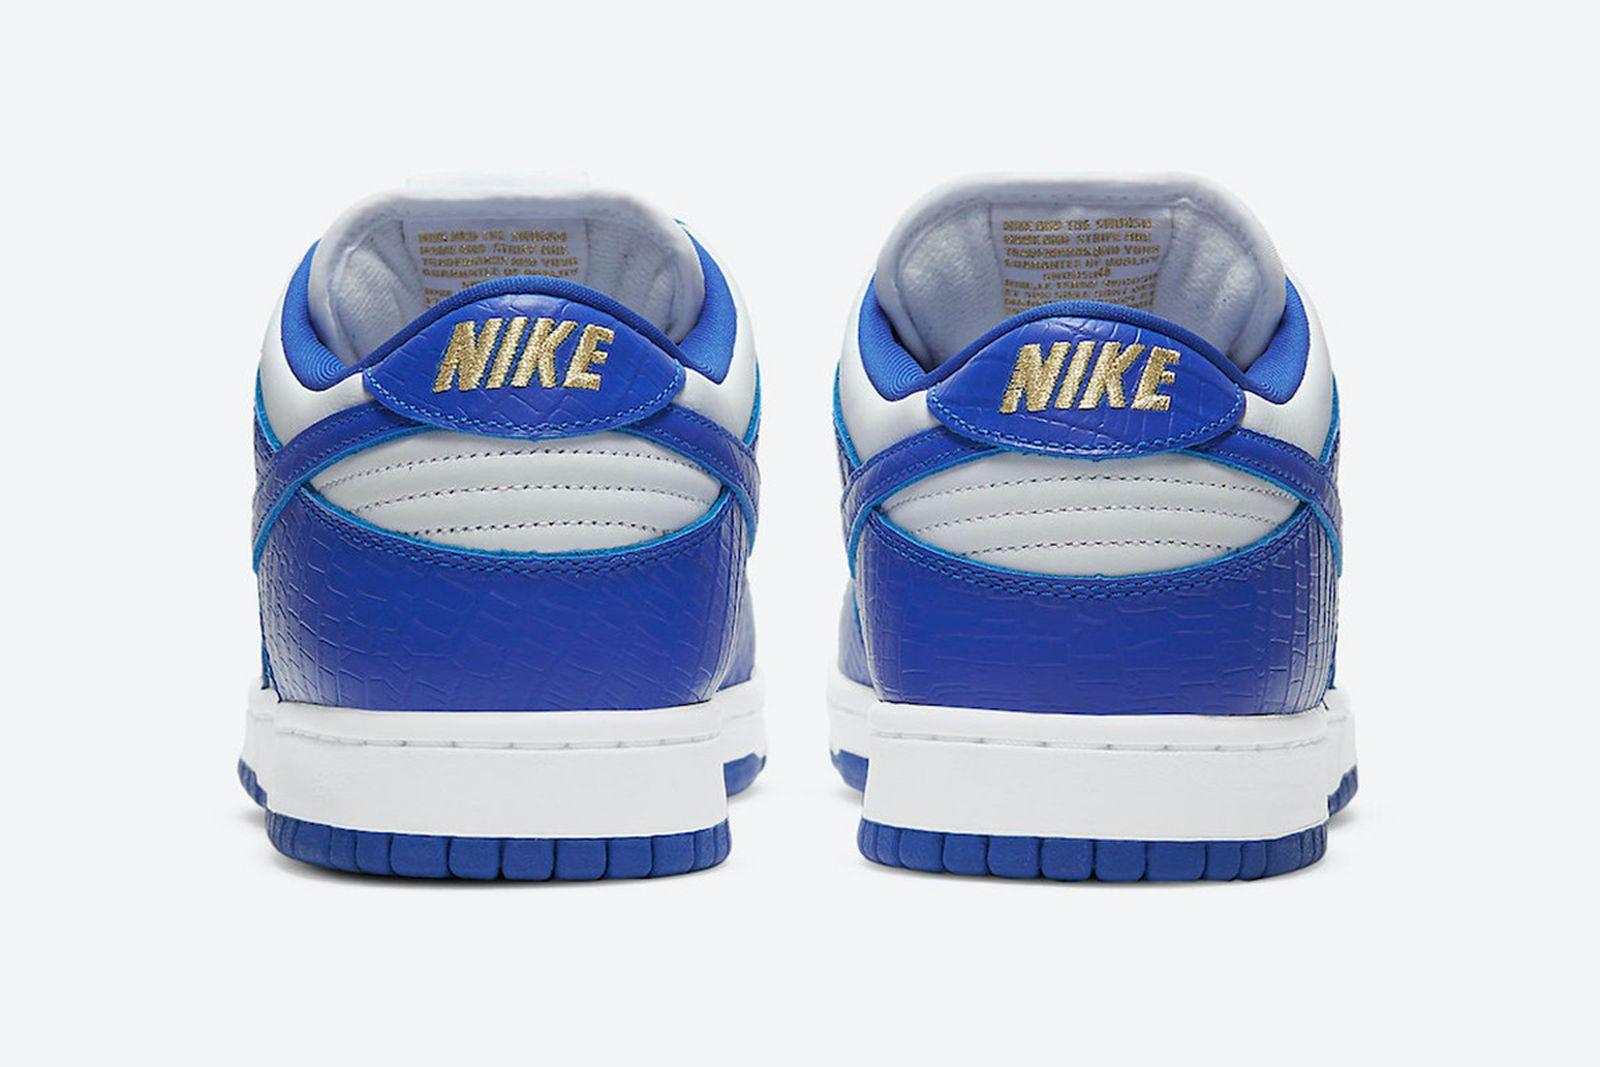 supreme-nike-sb-dunk-low-hyper-blue-release-date-price-04